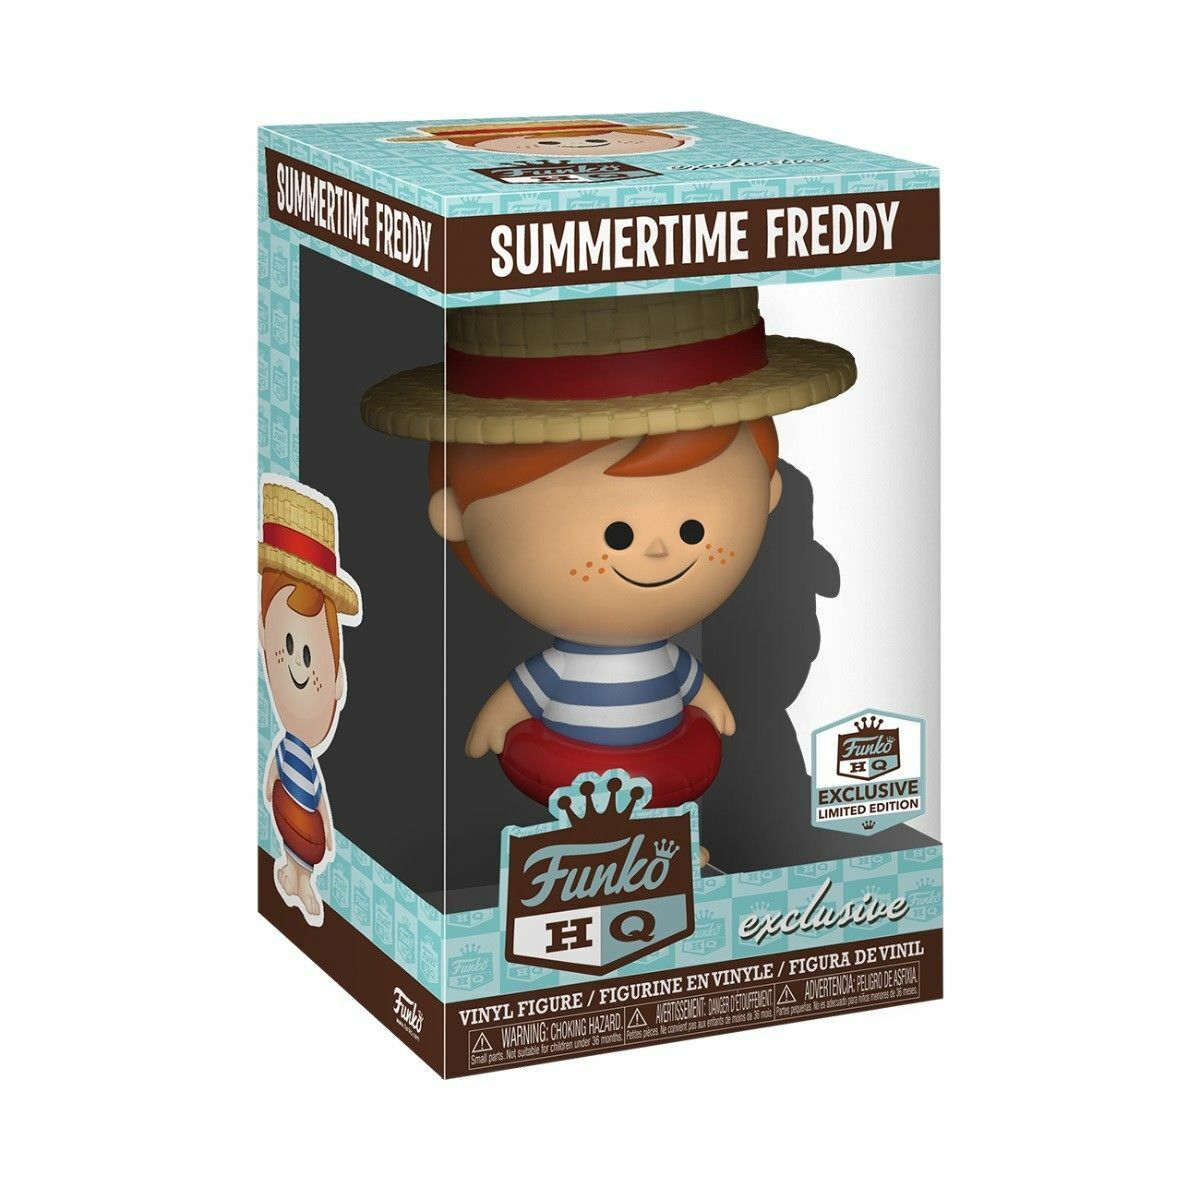 Funko Summertime Frotdy 29370 Funko Exclusive